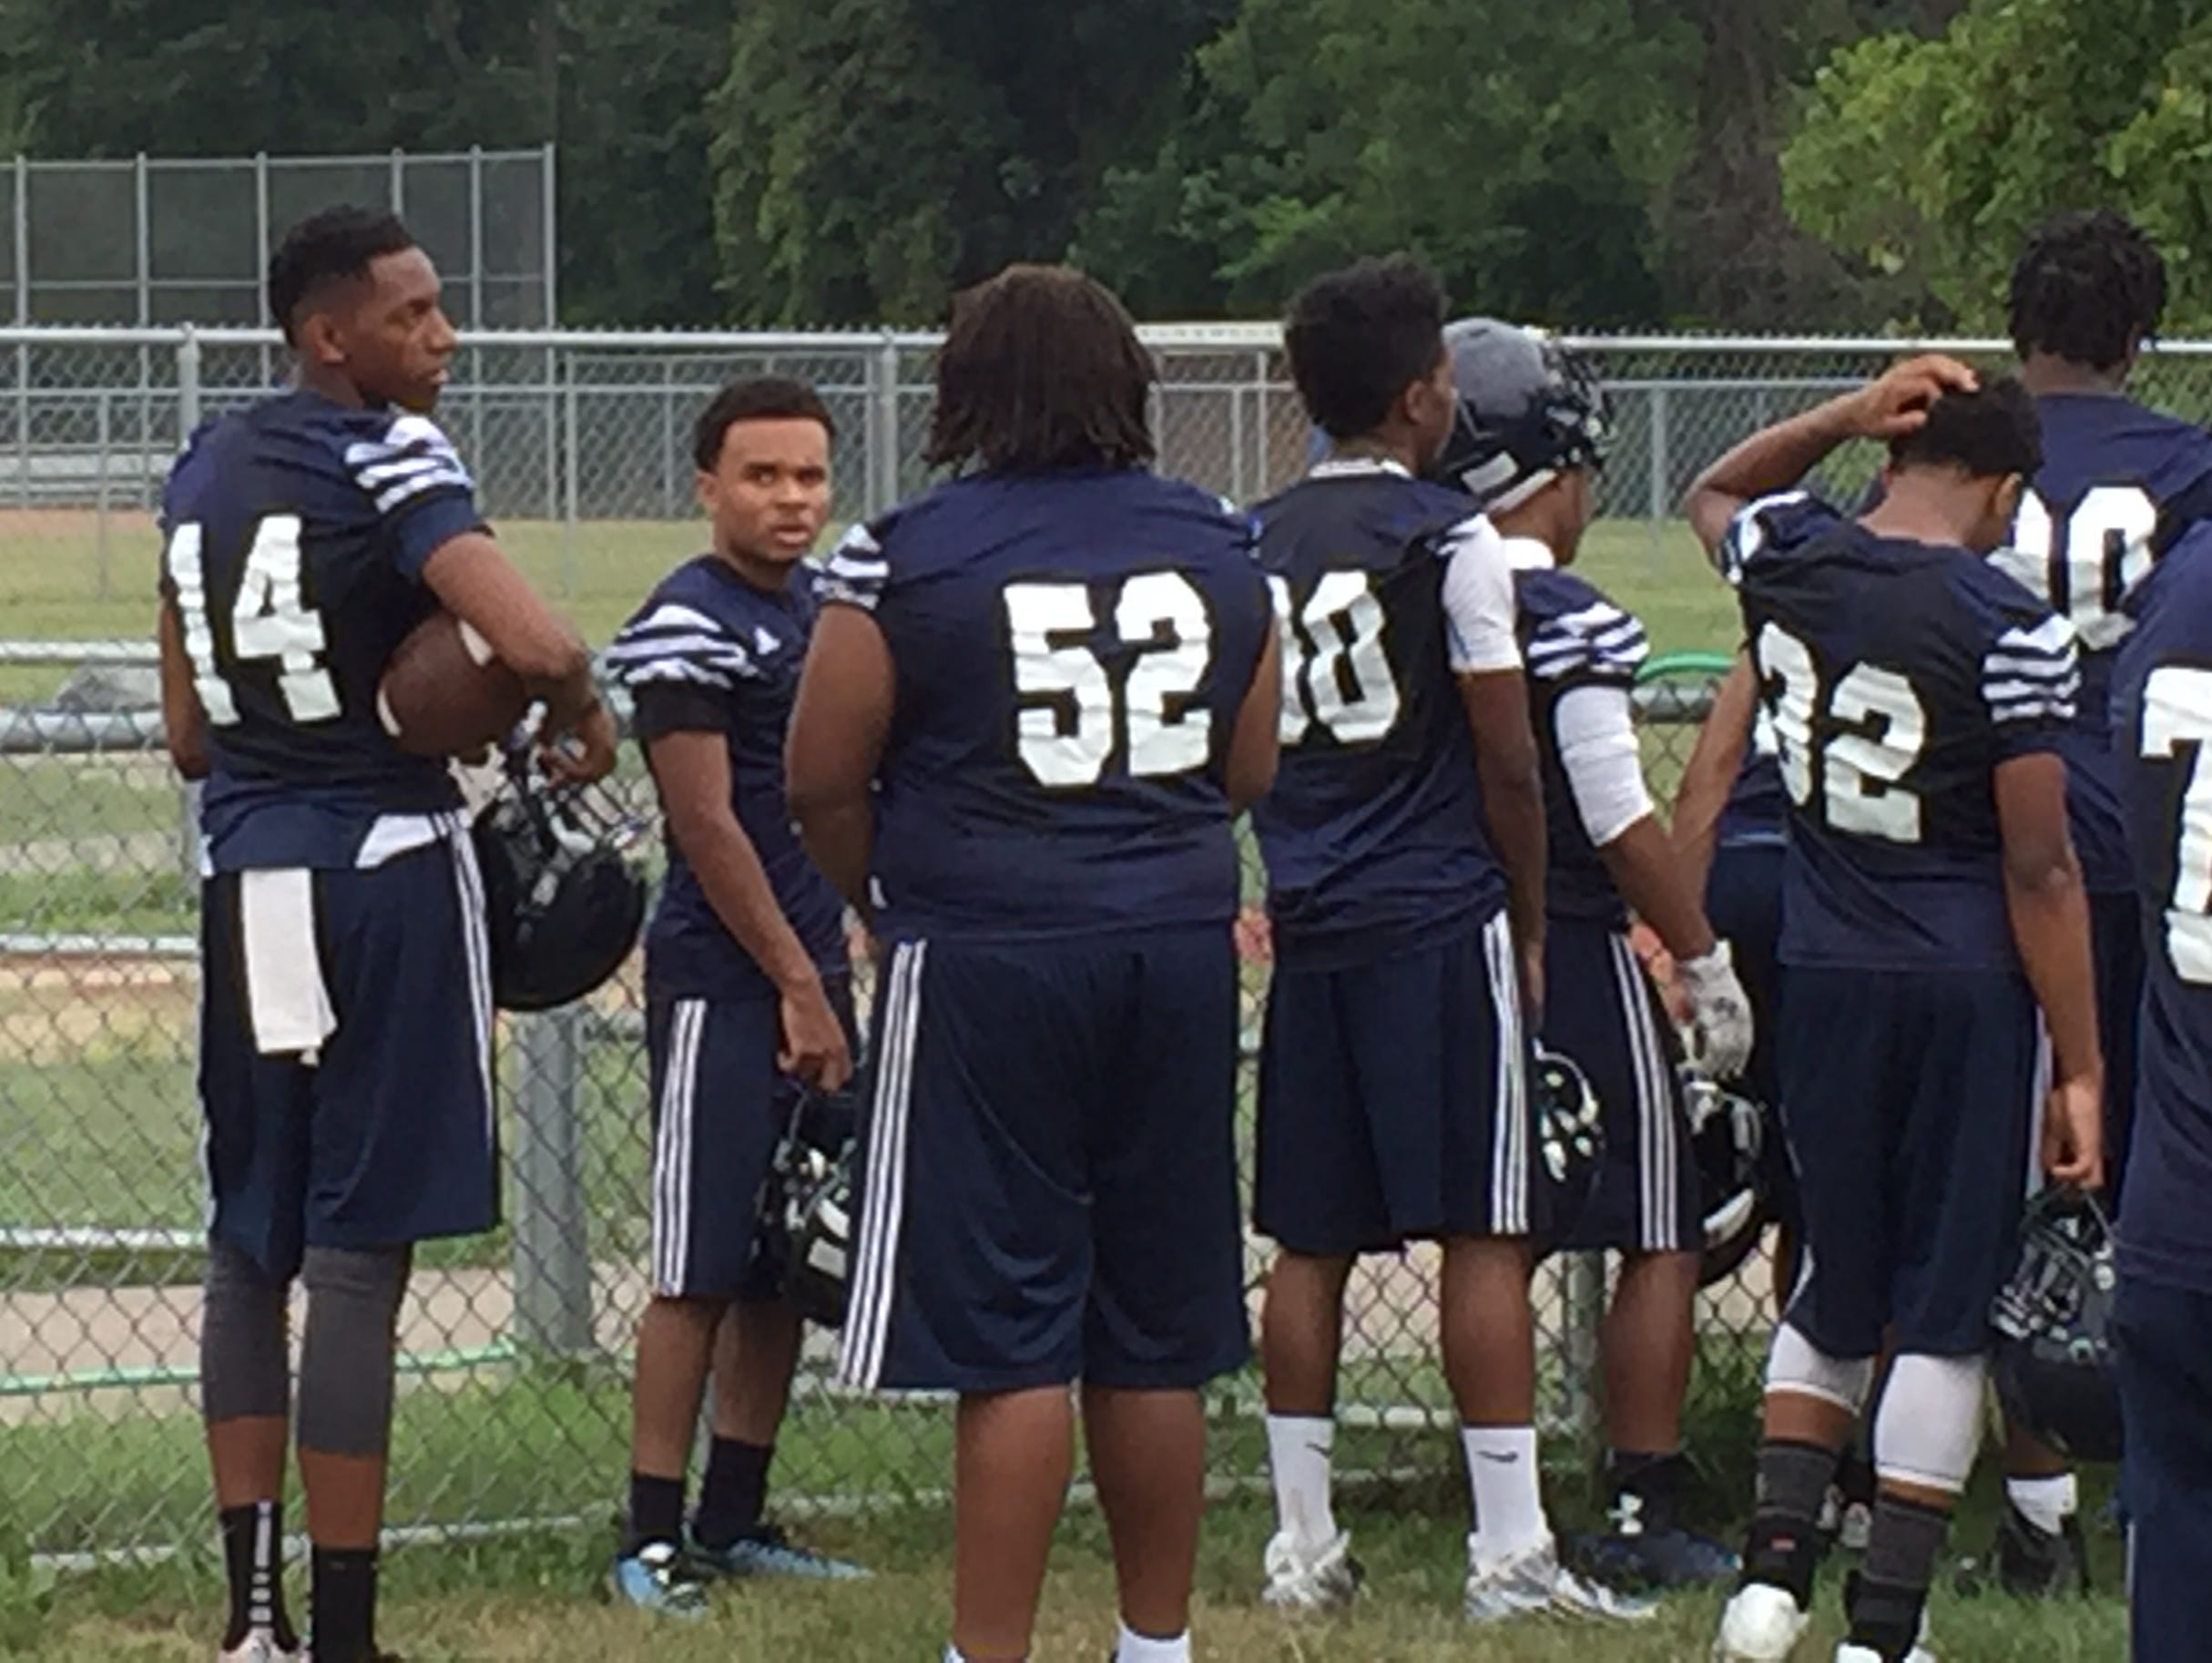 Southfield quarterback Sam Johnson III (#14) with his teammates at practice Aug. 10, 2015.